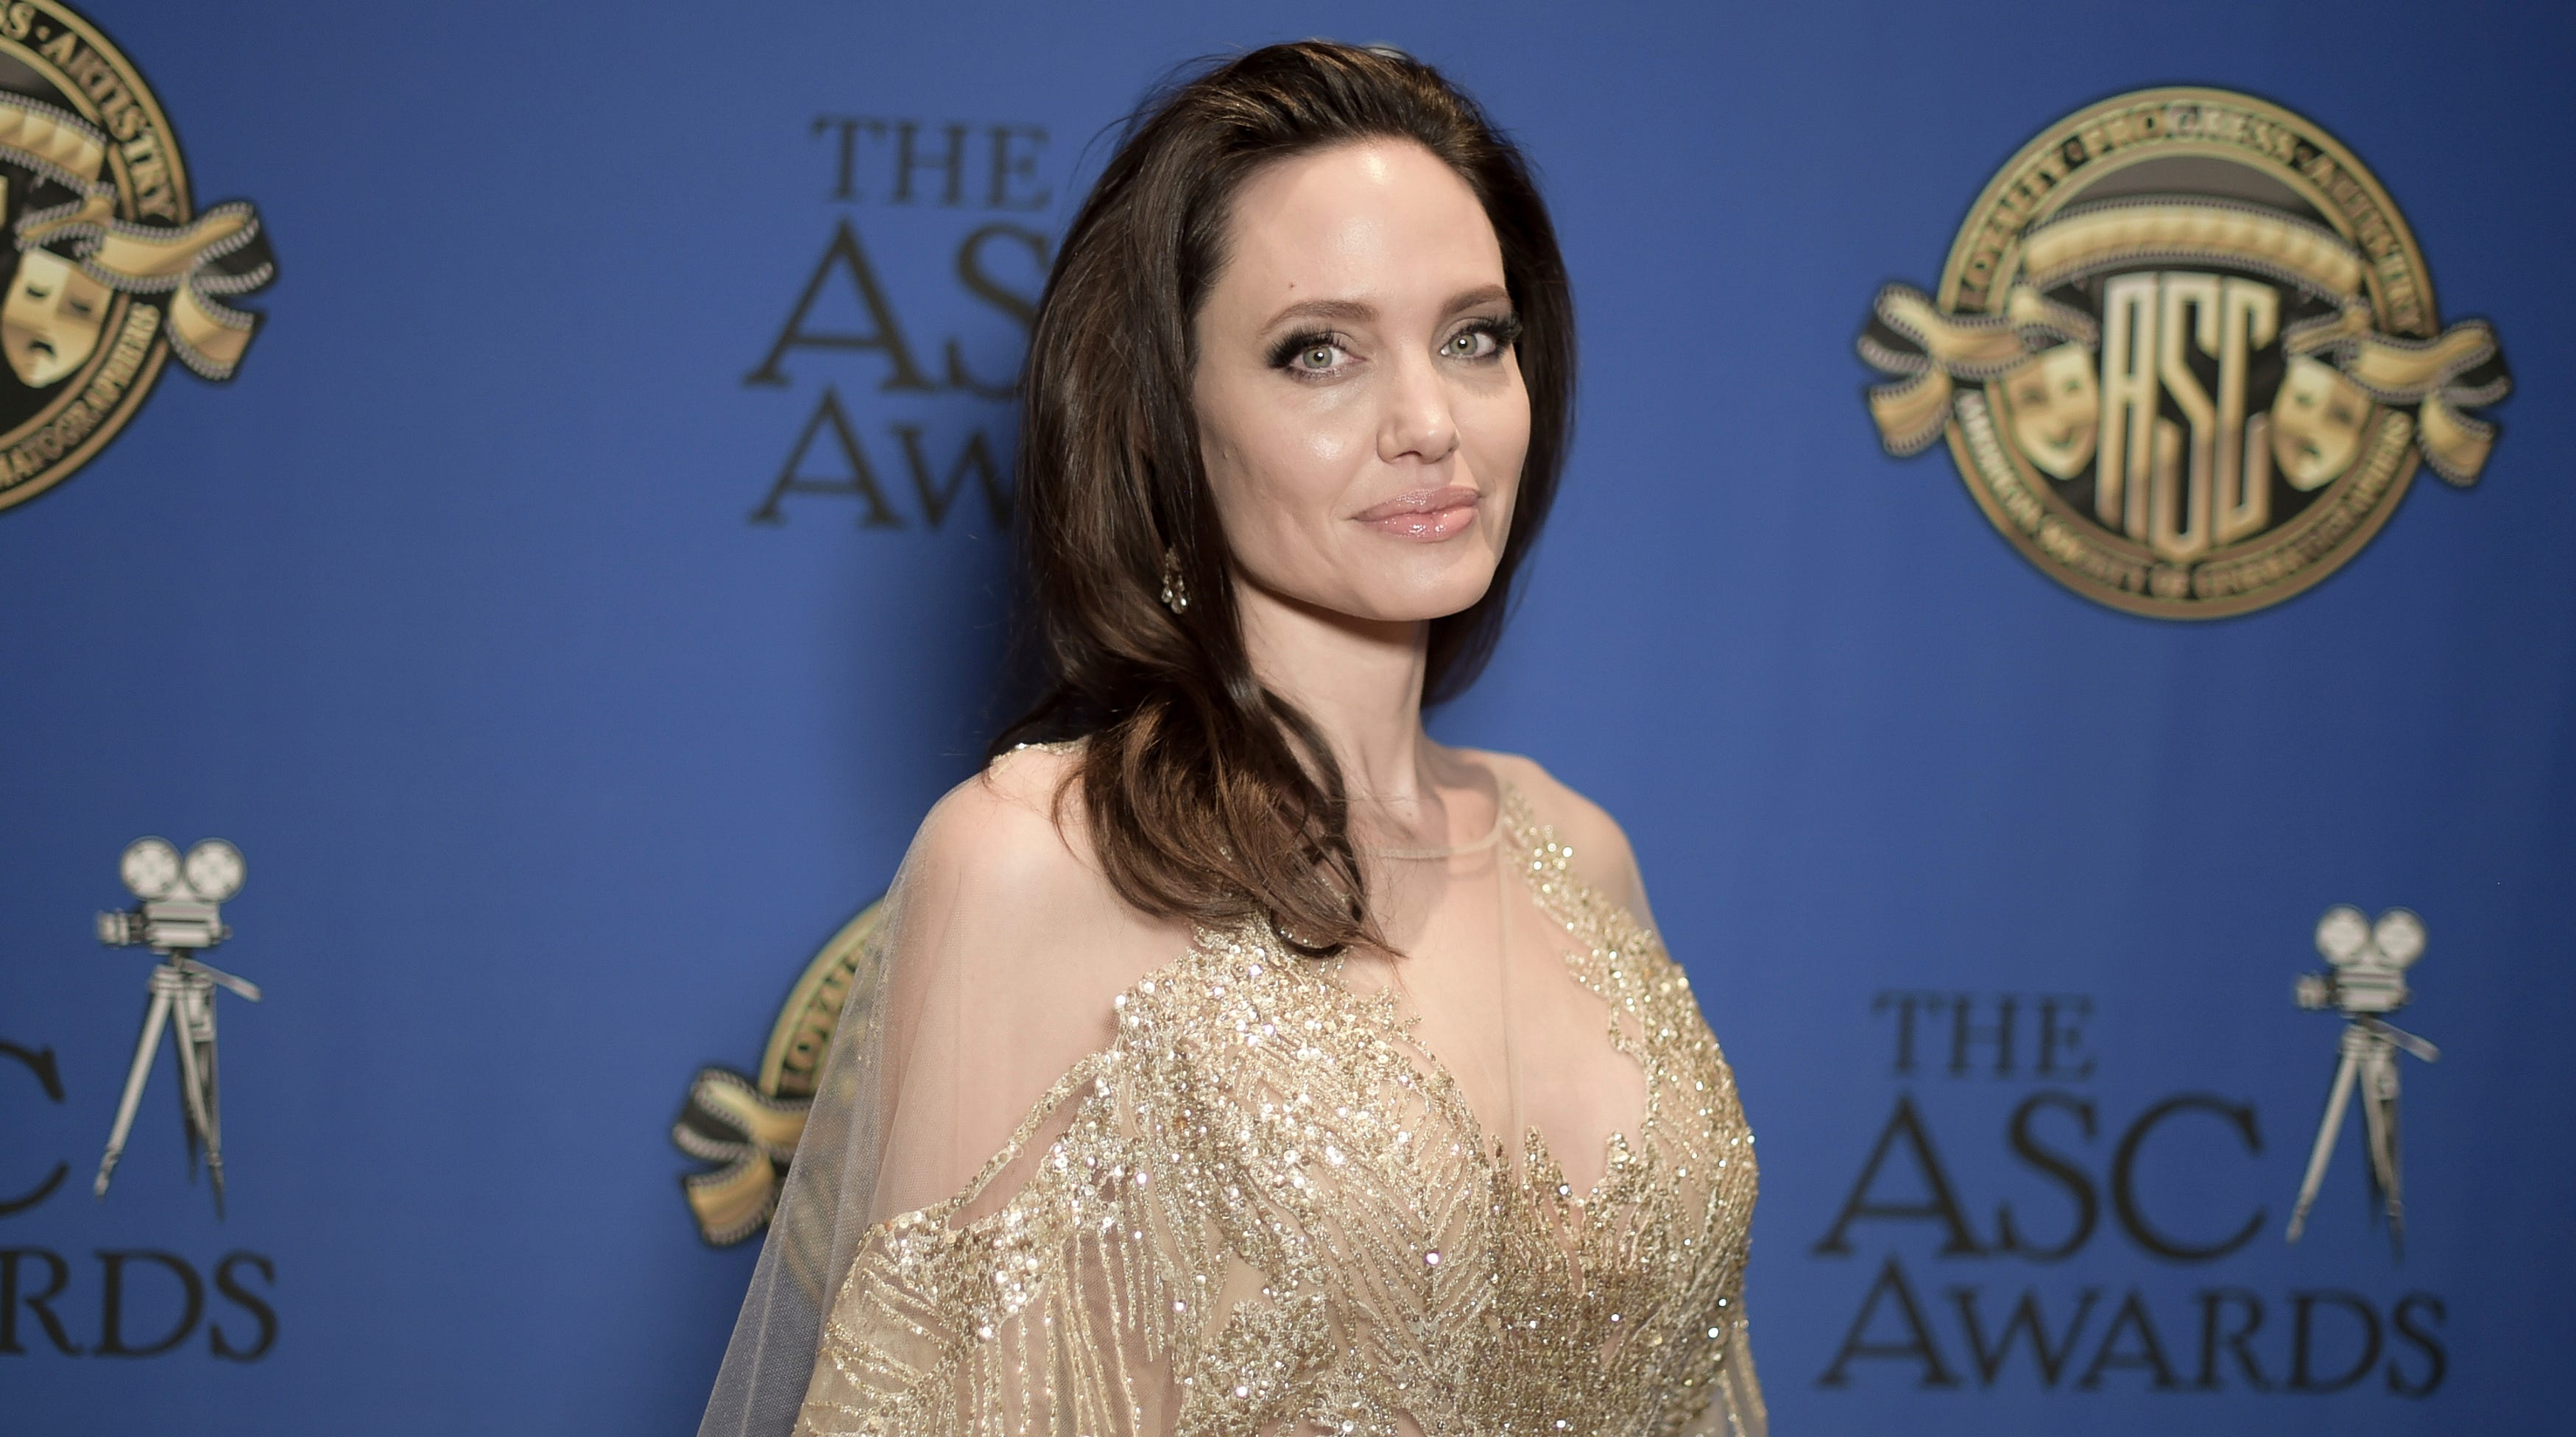 Back to blond! Angelina Jolie looks drastically different for new film